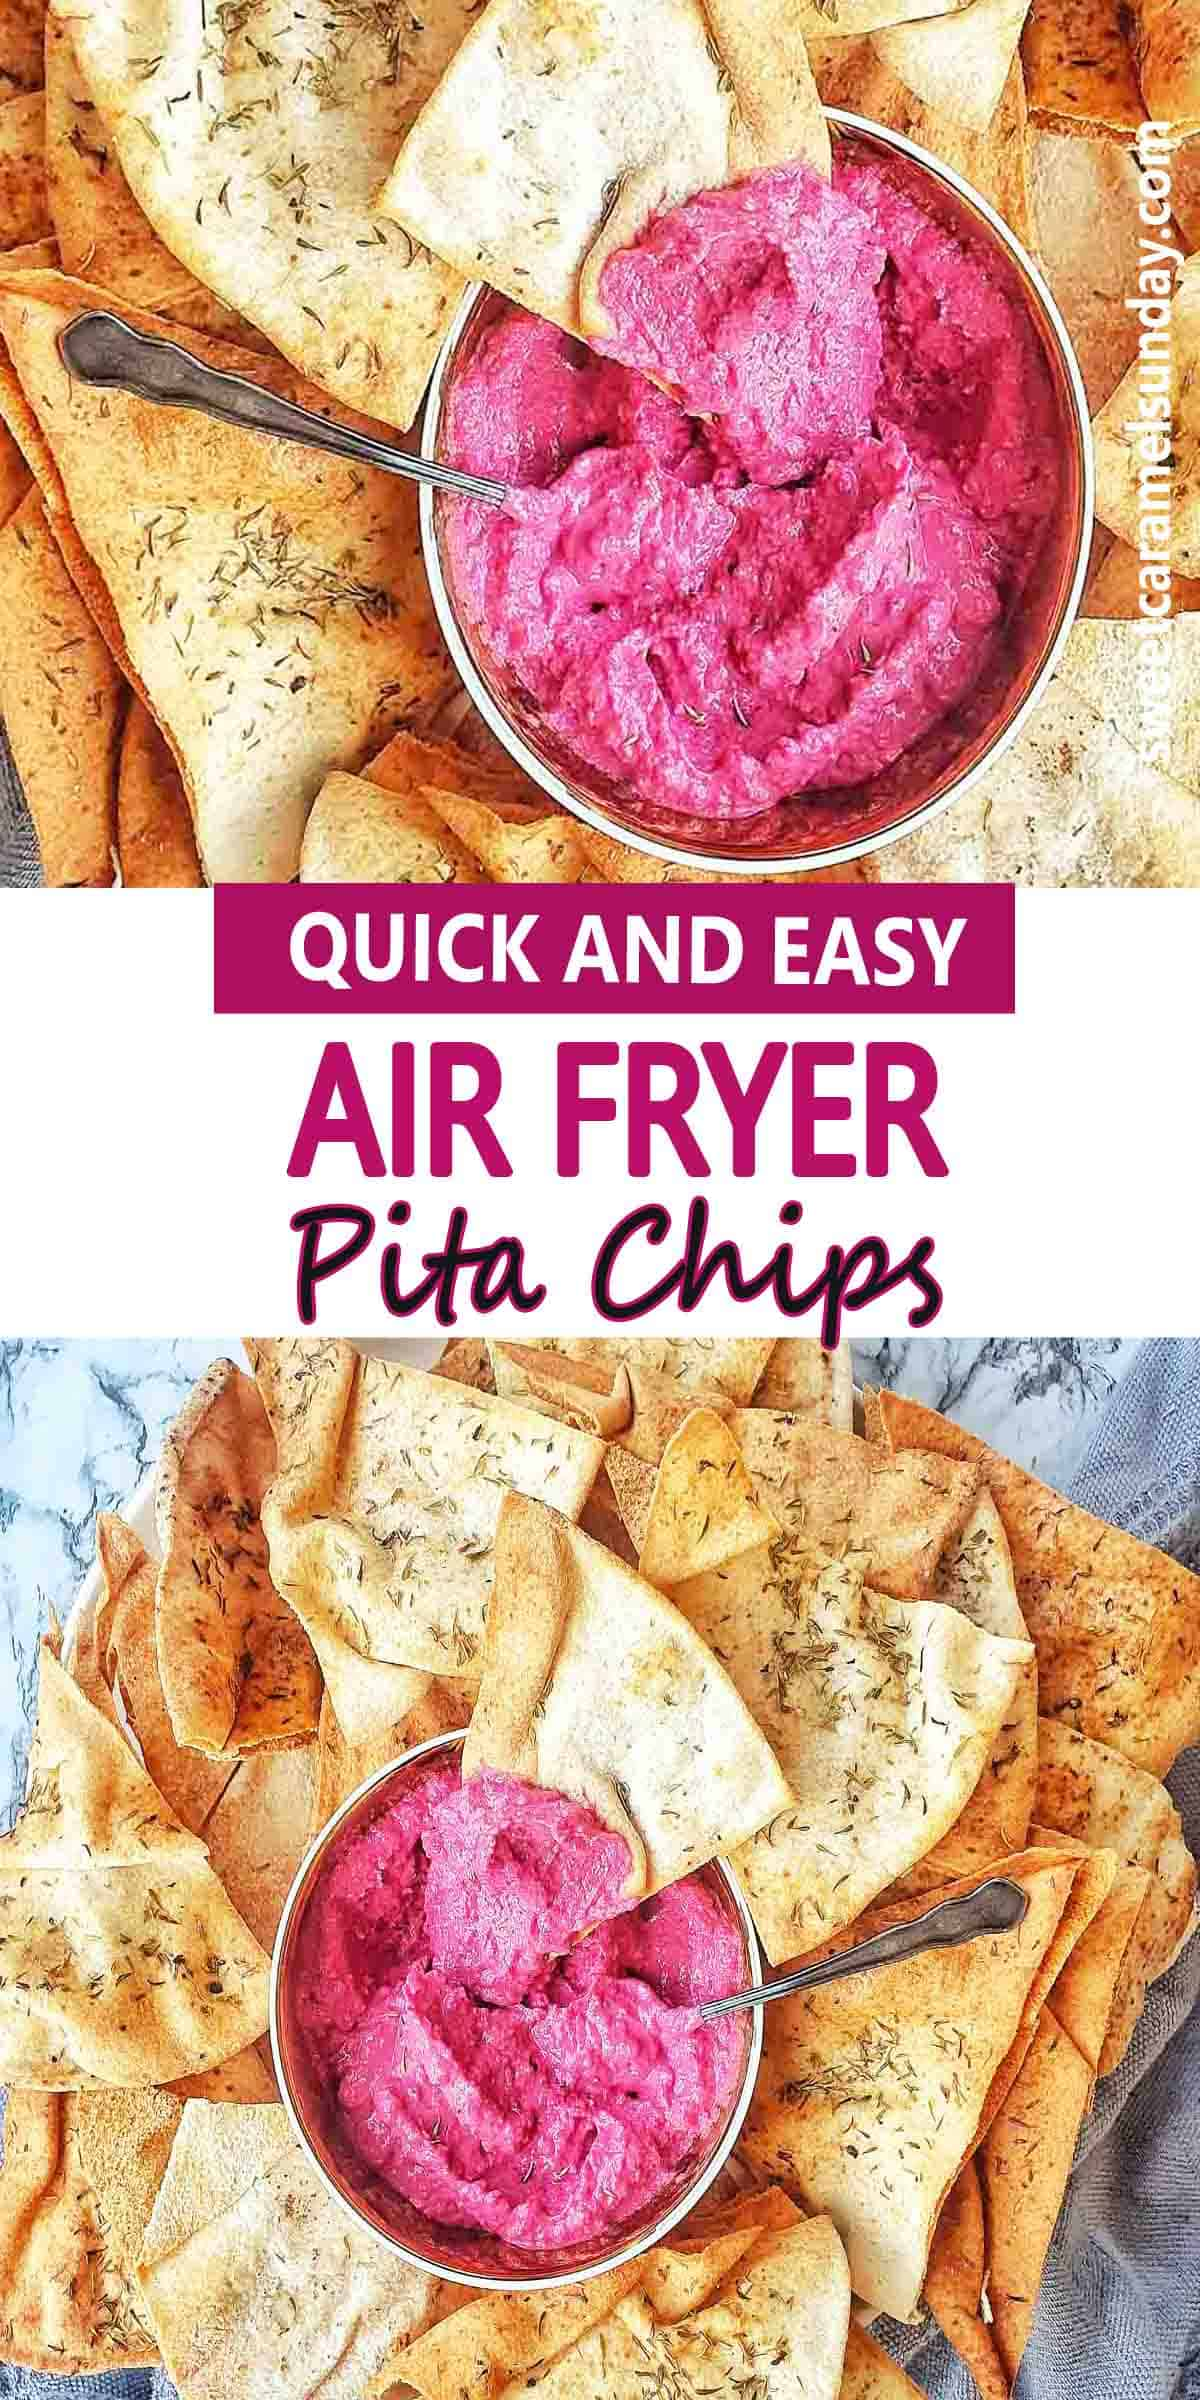 Air Fryer Pita Chips with text label